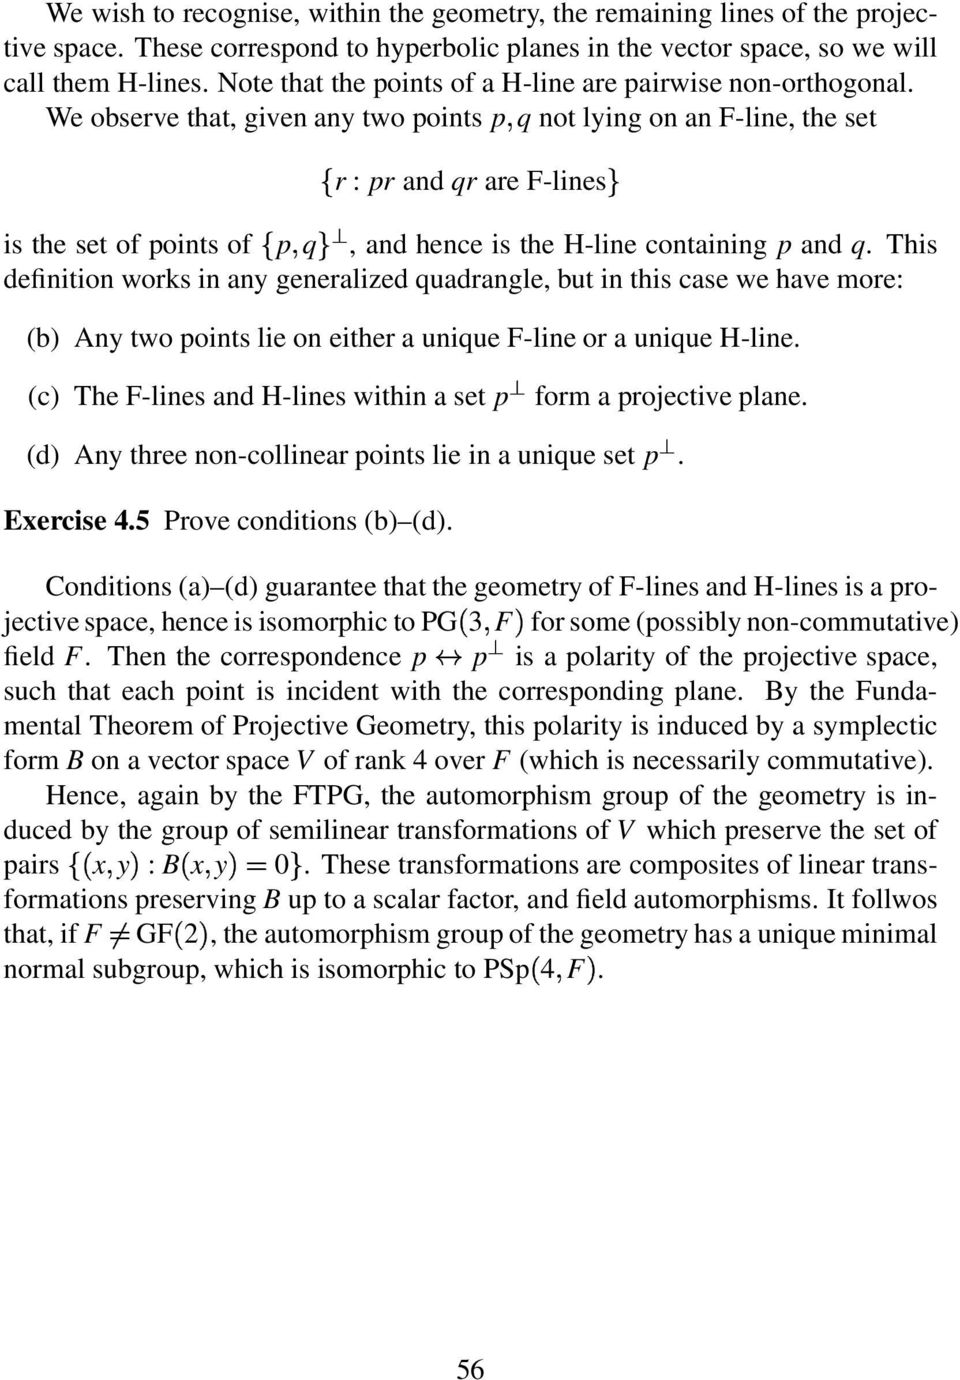 "p q""g8, and hence is the H-line containing p and q."